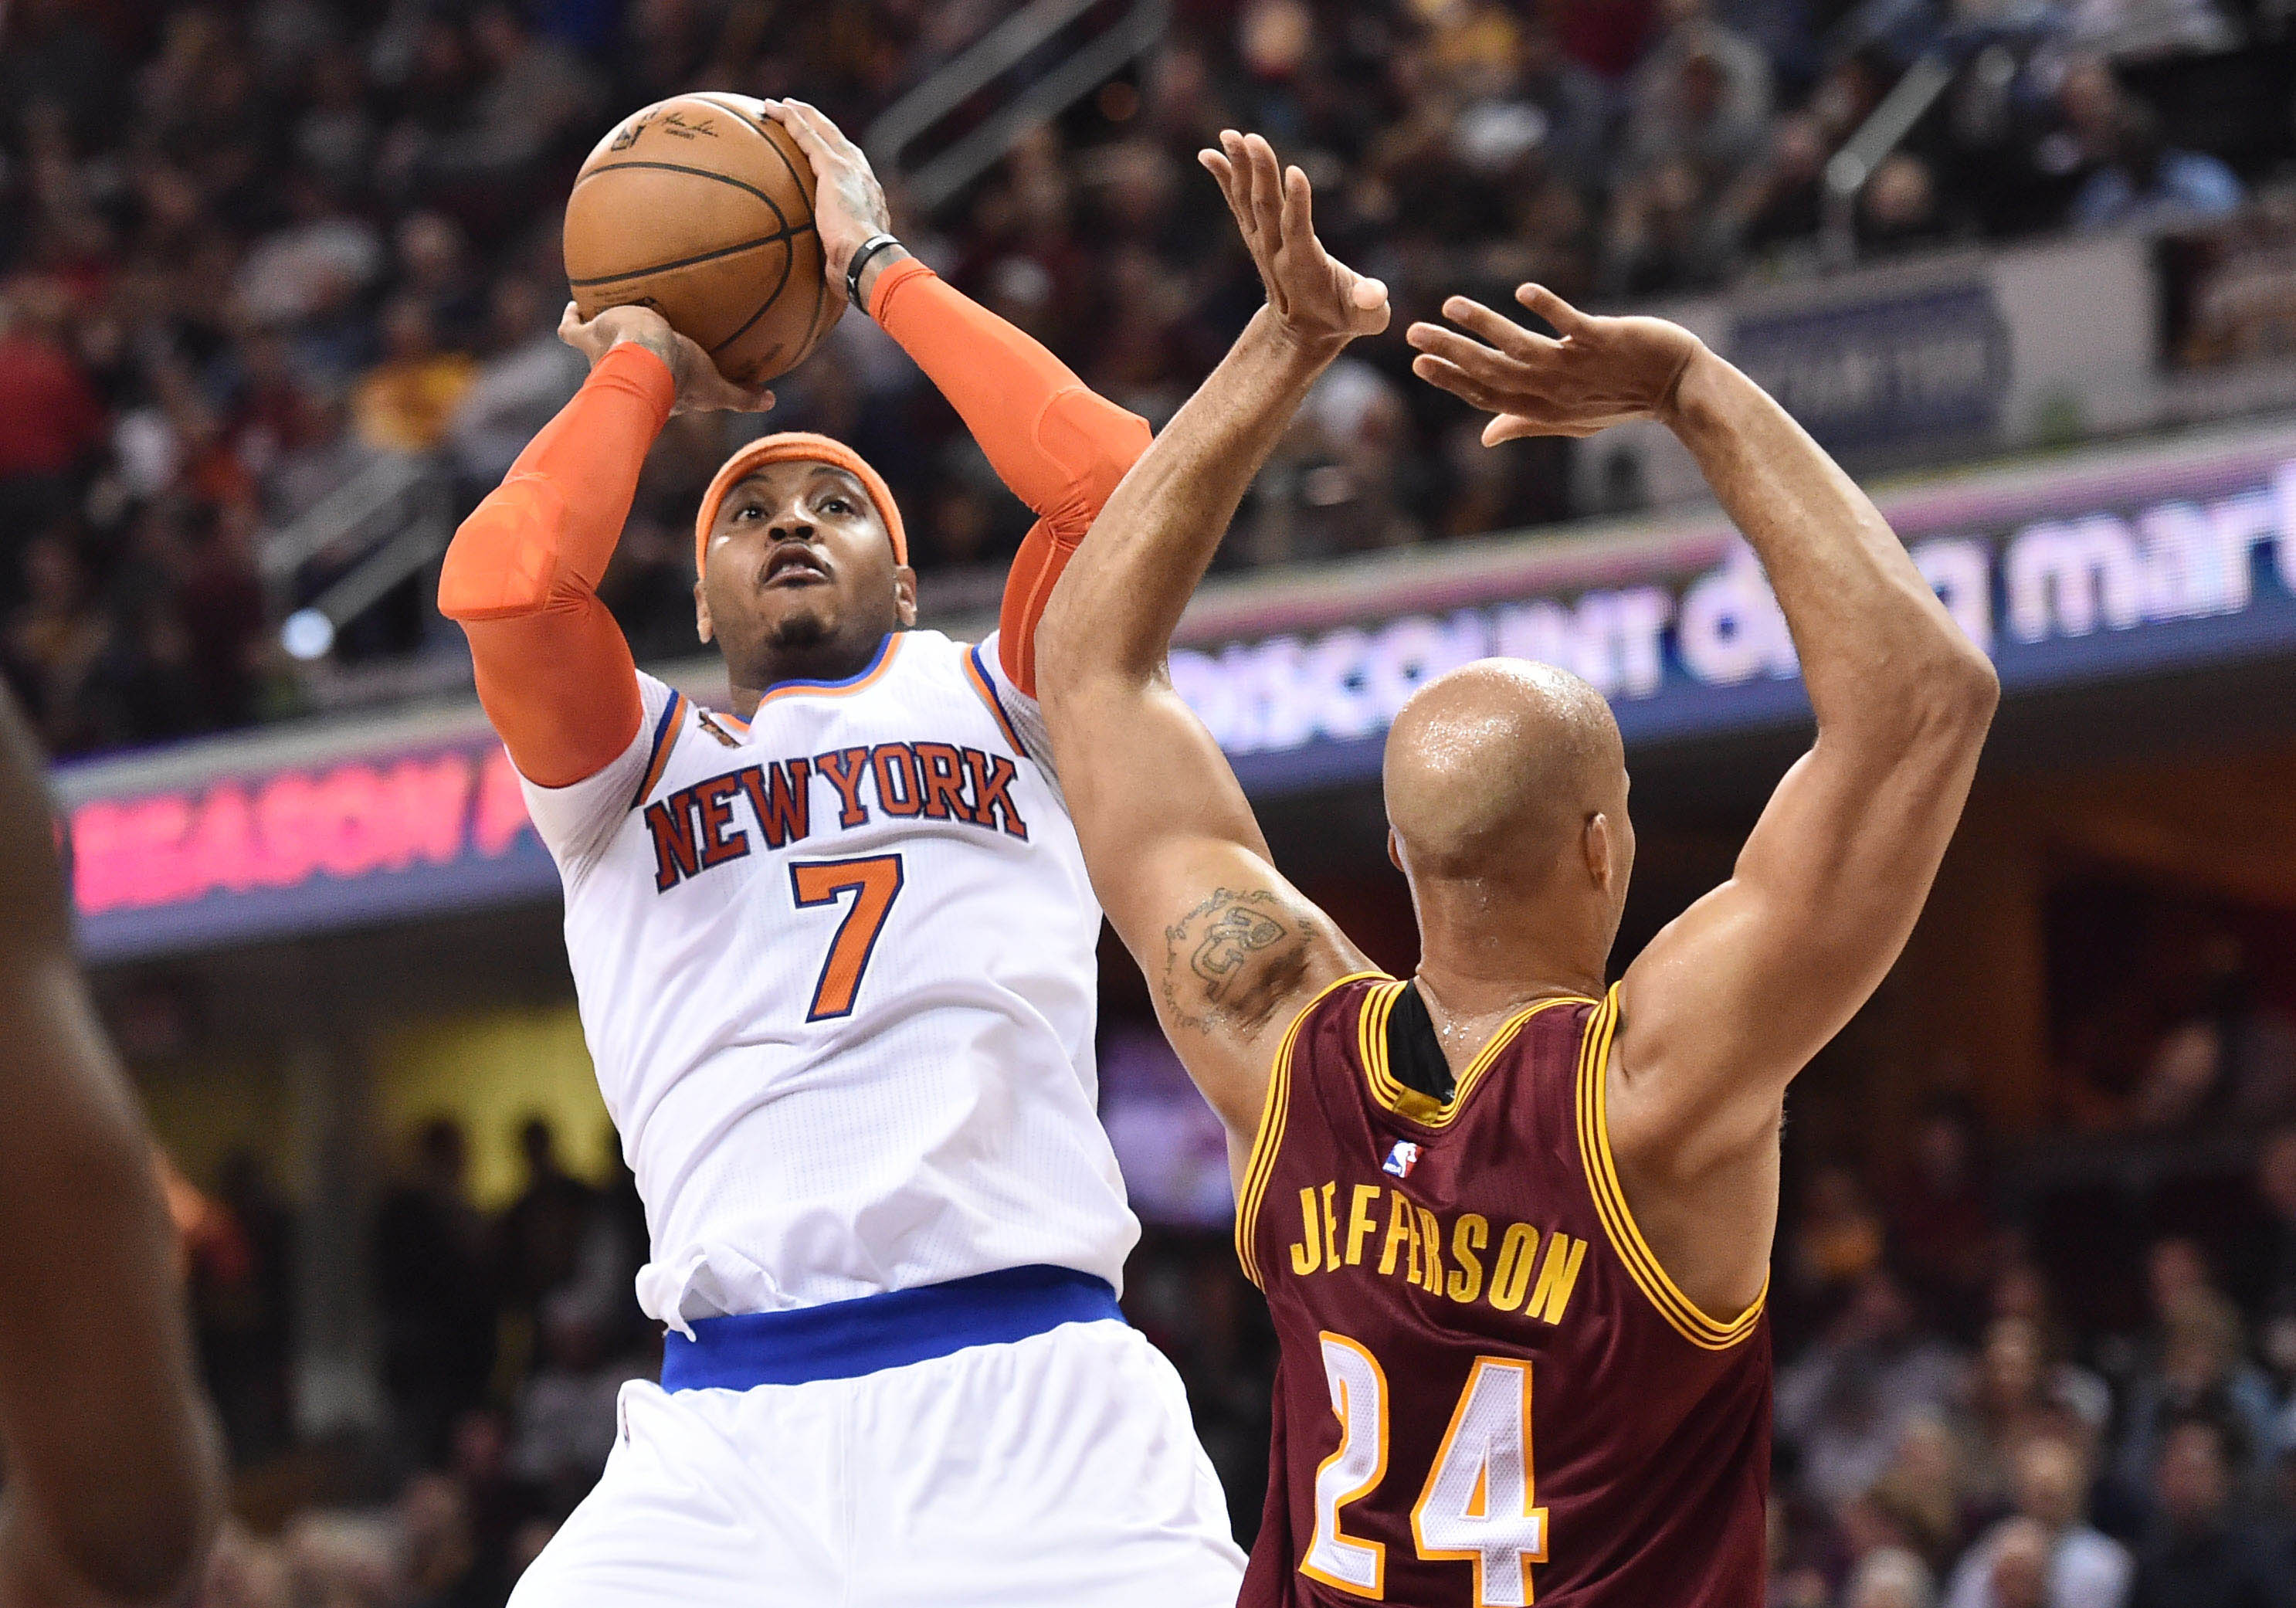 9896307-nba-new-york-knicks-at-cleveland-cavaliers